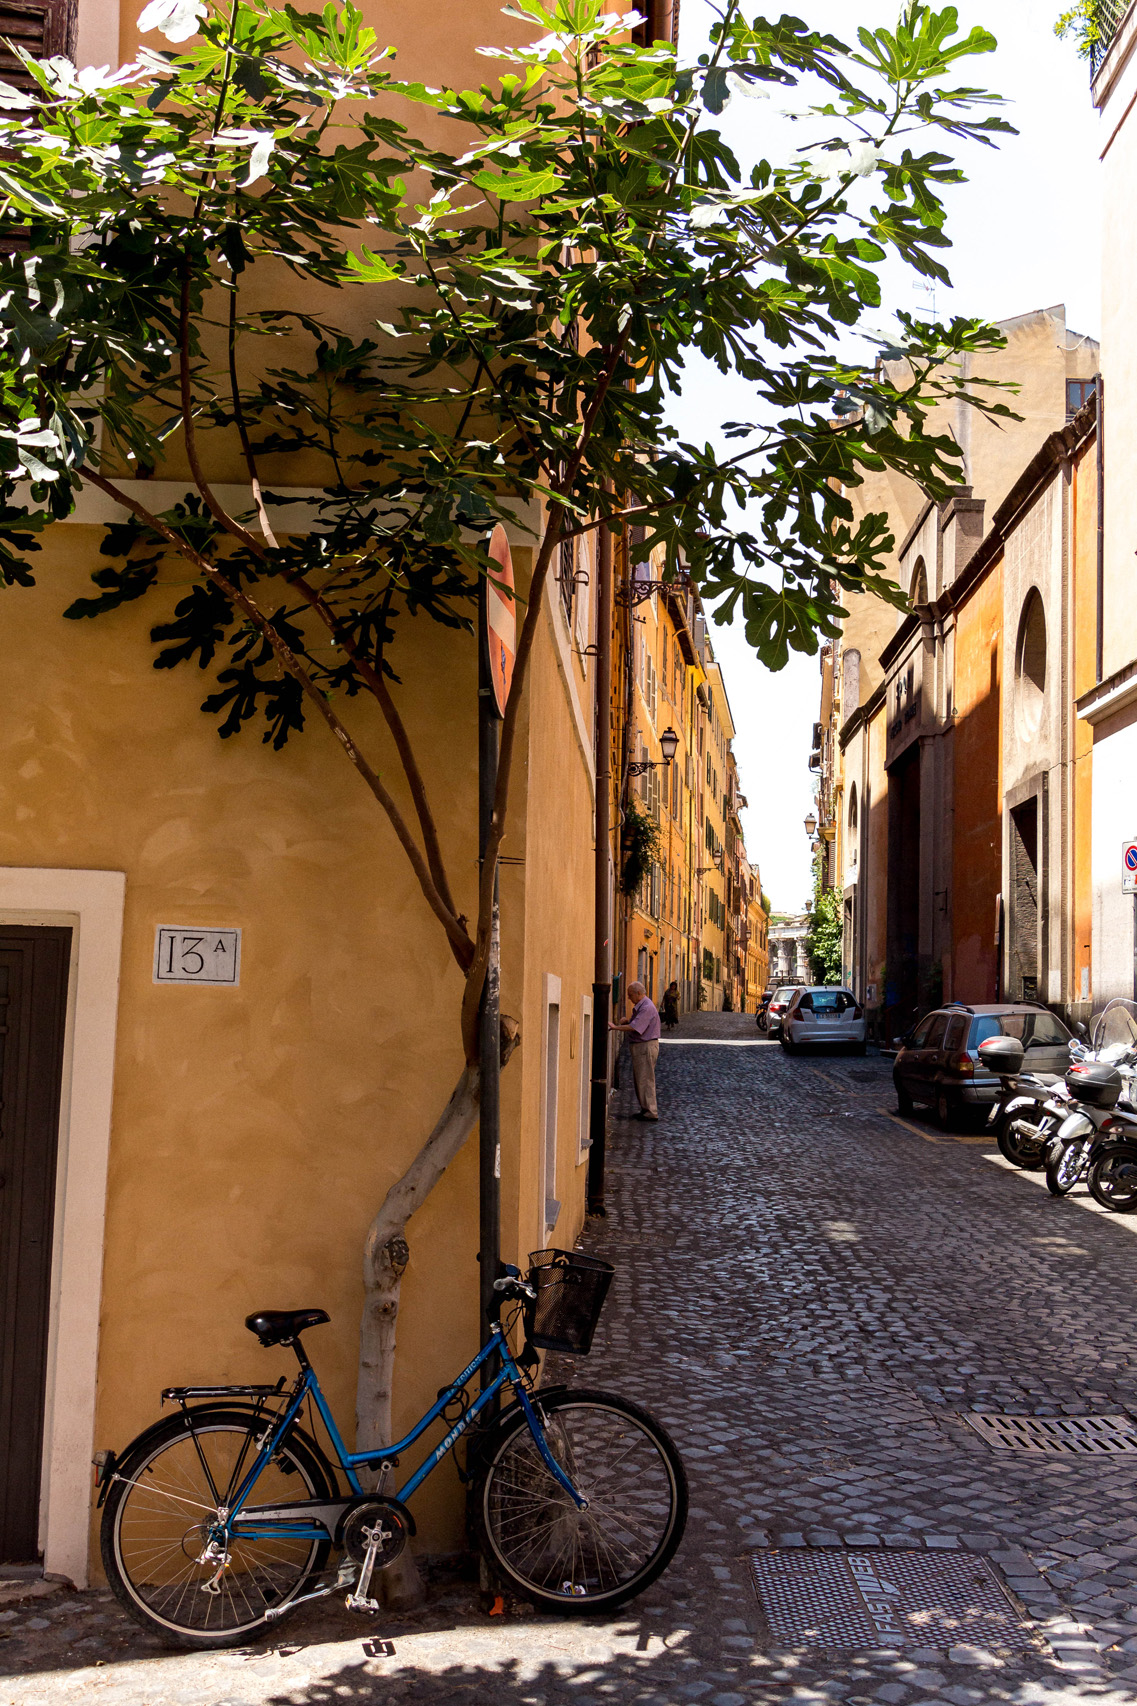 Streets of Monti, Rome